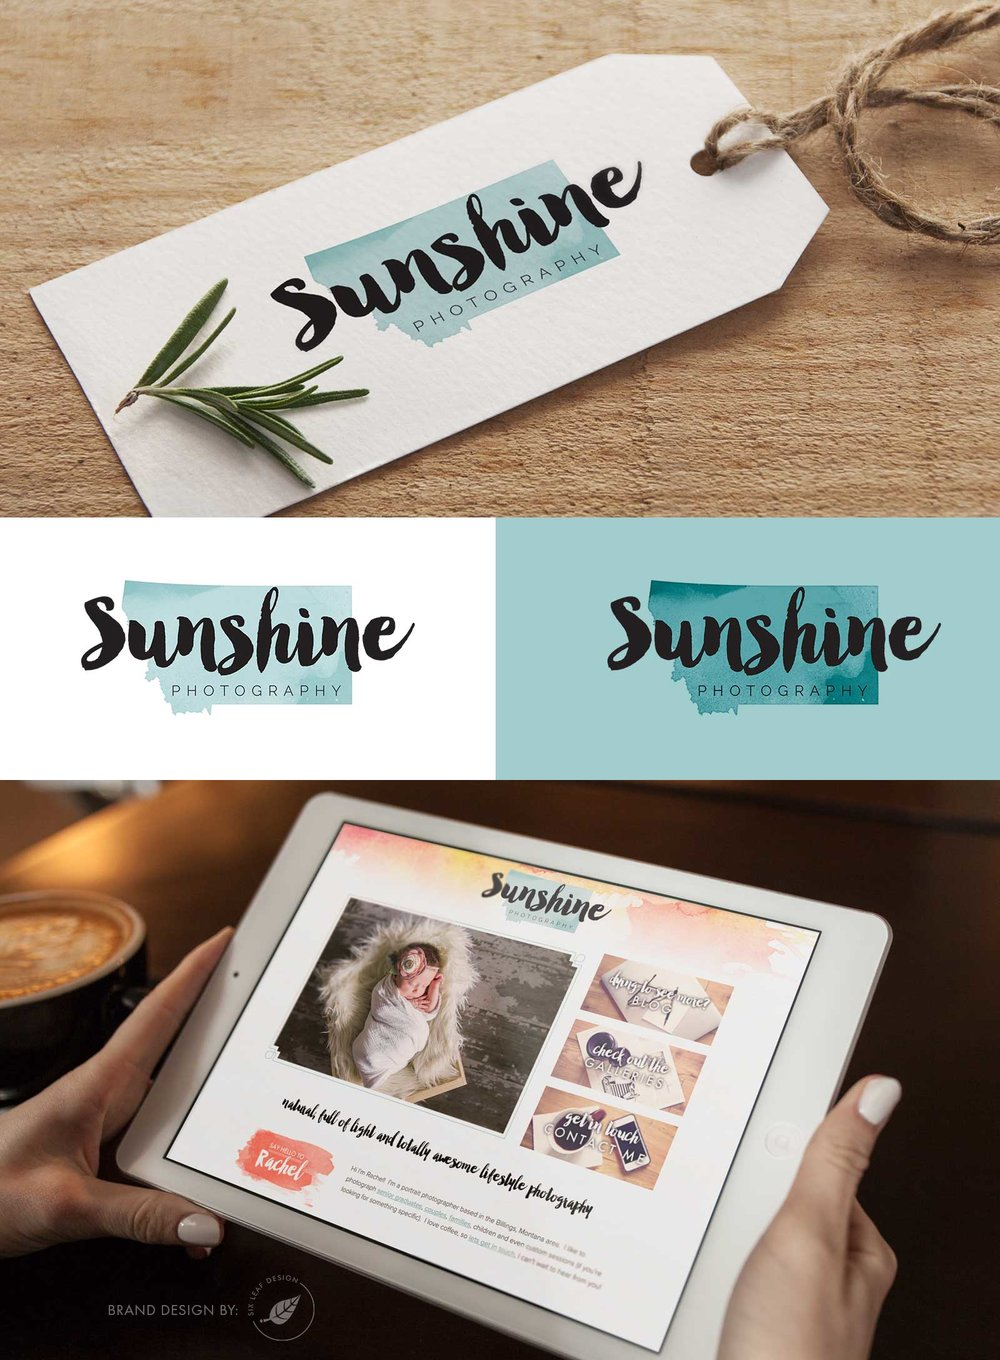 Logo Redesign for Sunshine Photography Featuring Script, Watercolor Texture and Teal + Orange Color Palette